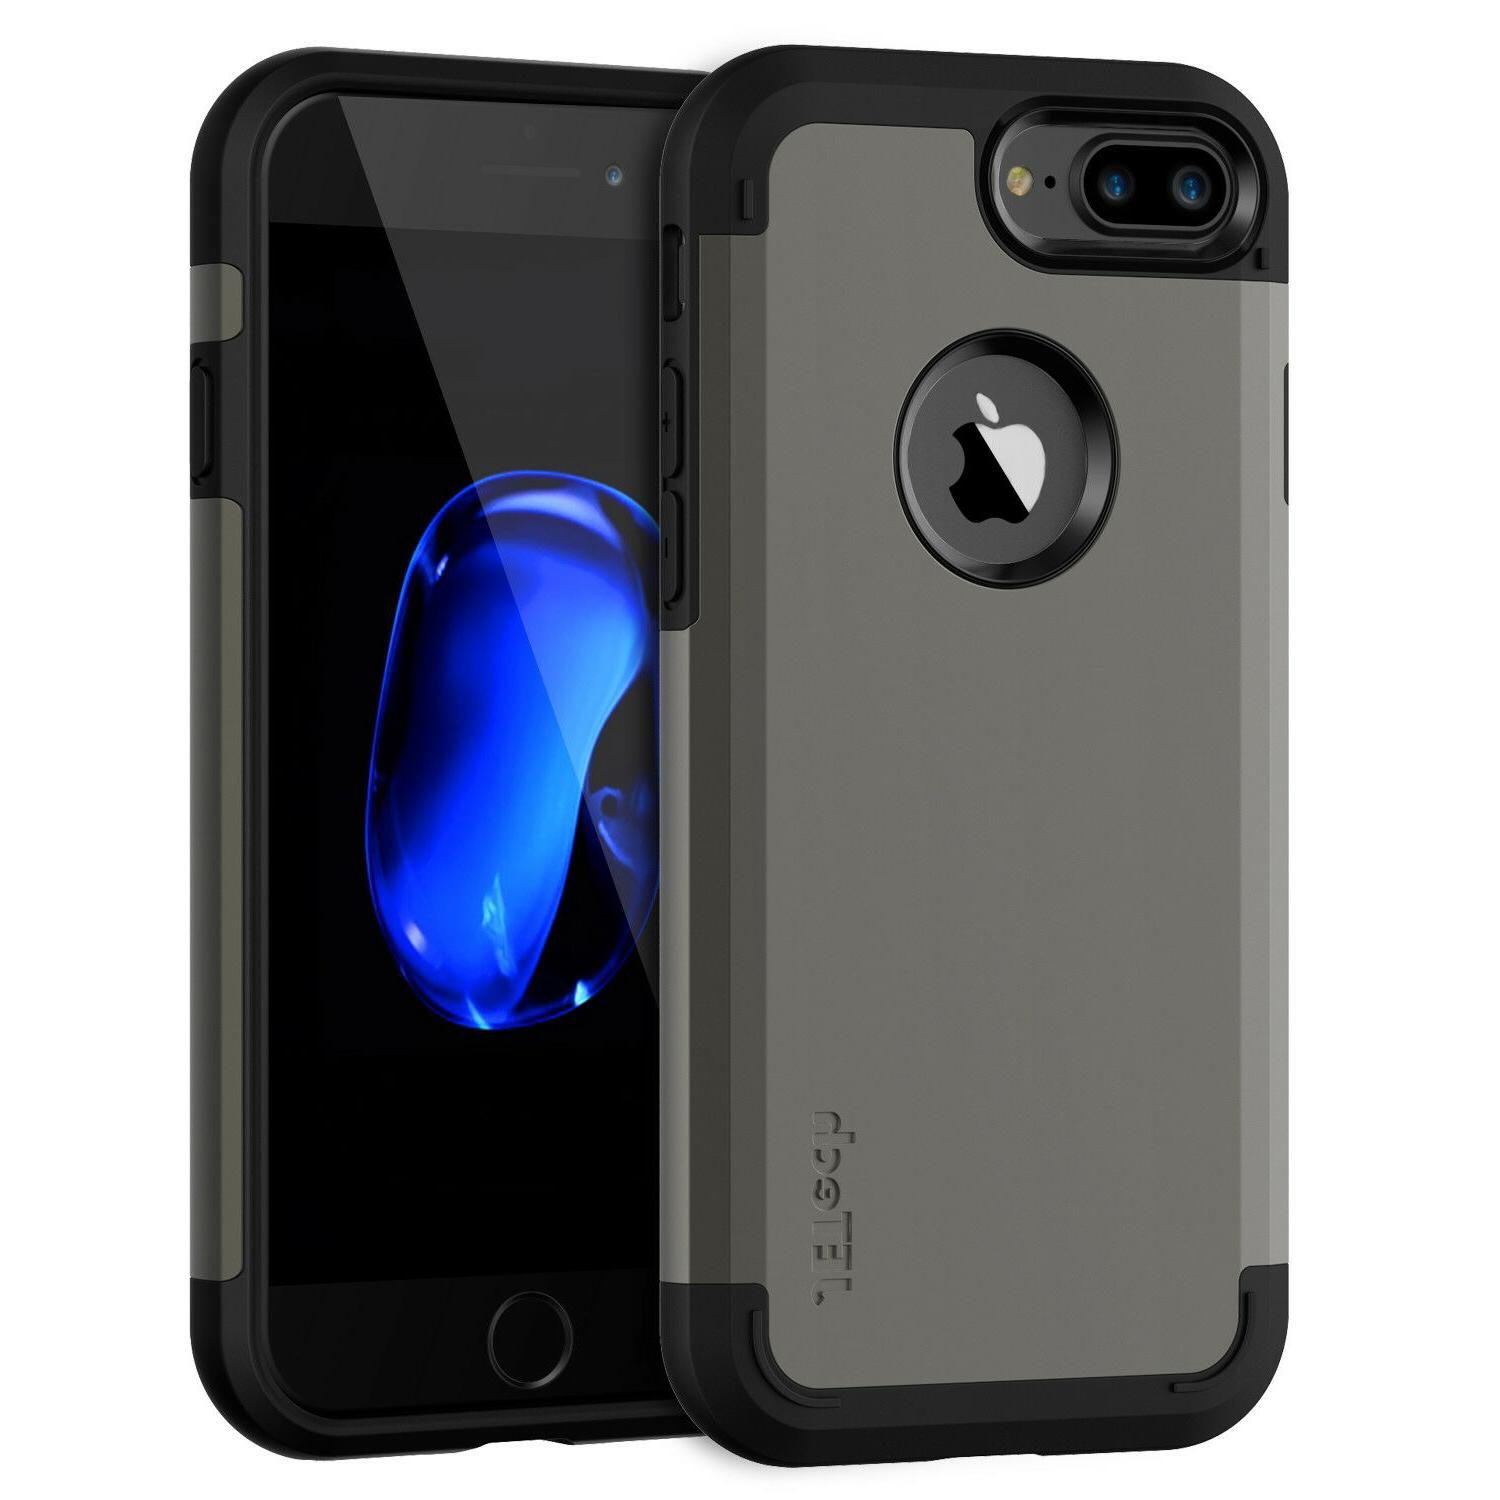 JETech Case for iPhone 8/7 and iPhone 8/7 Plus Shock-Absorpt